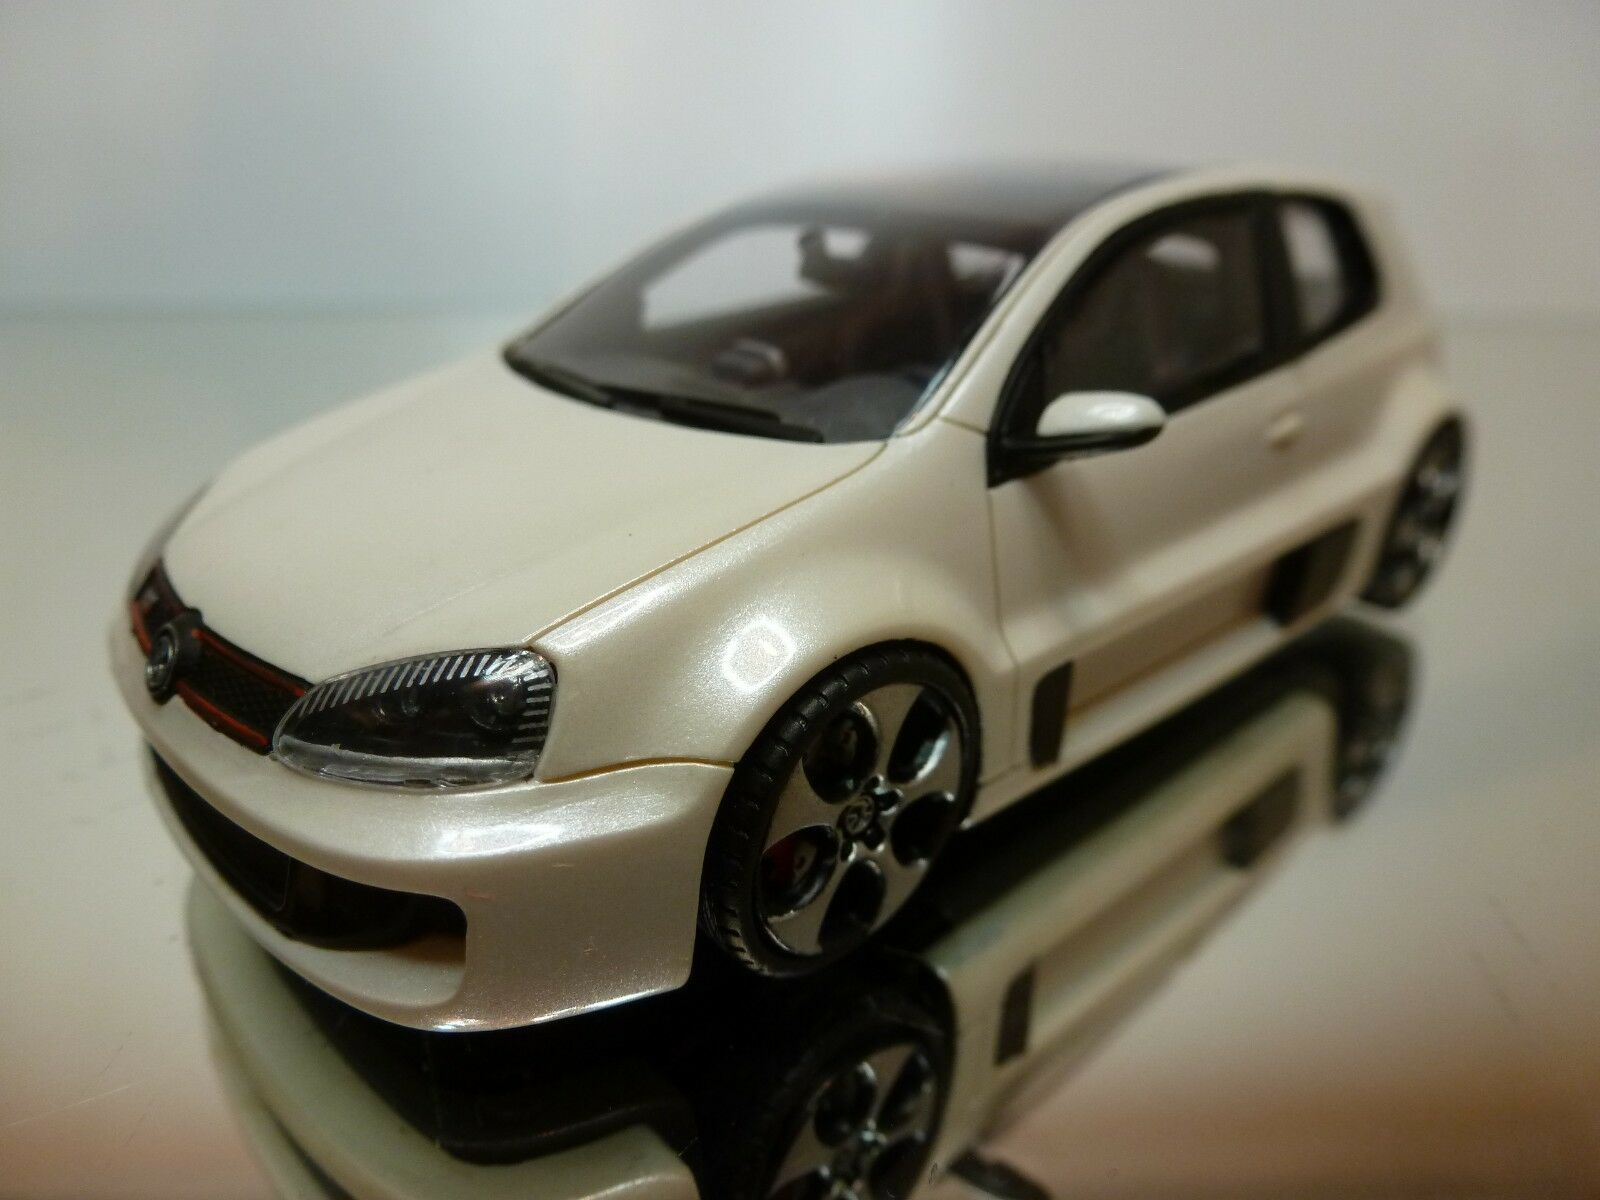 PROVENCE MOULAGE VW VOLKSWAGEN GTI W12-650 - IVORY 1 43 RARE - EXCELLENT - 24